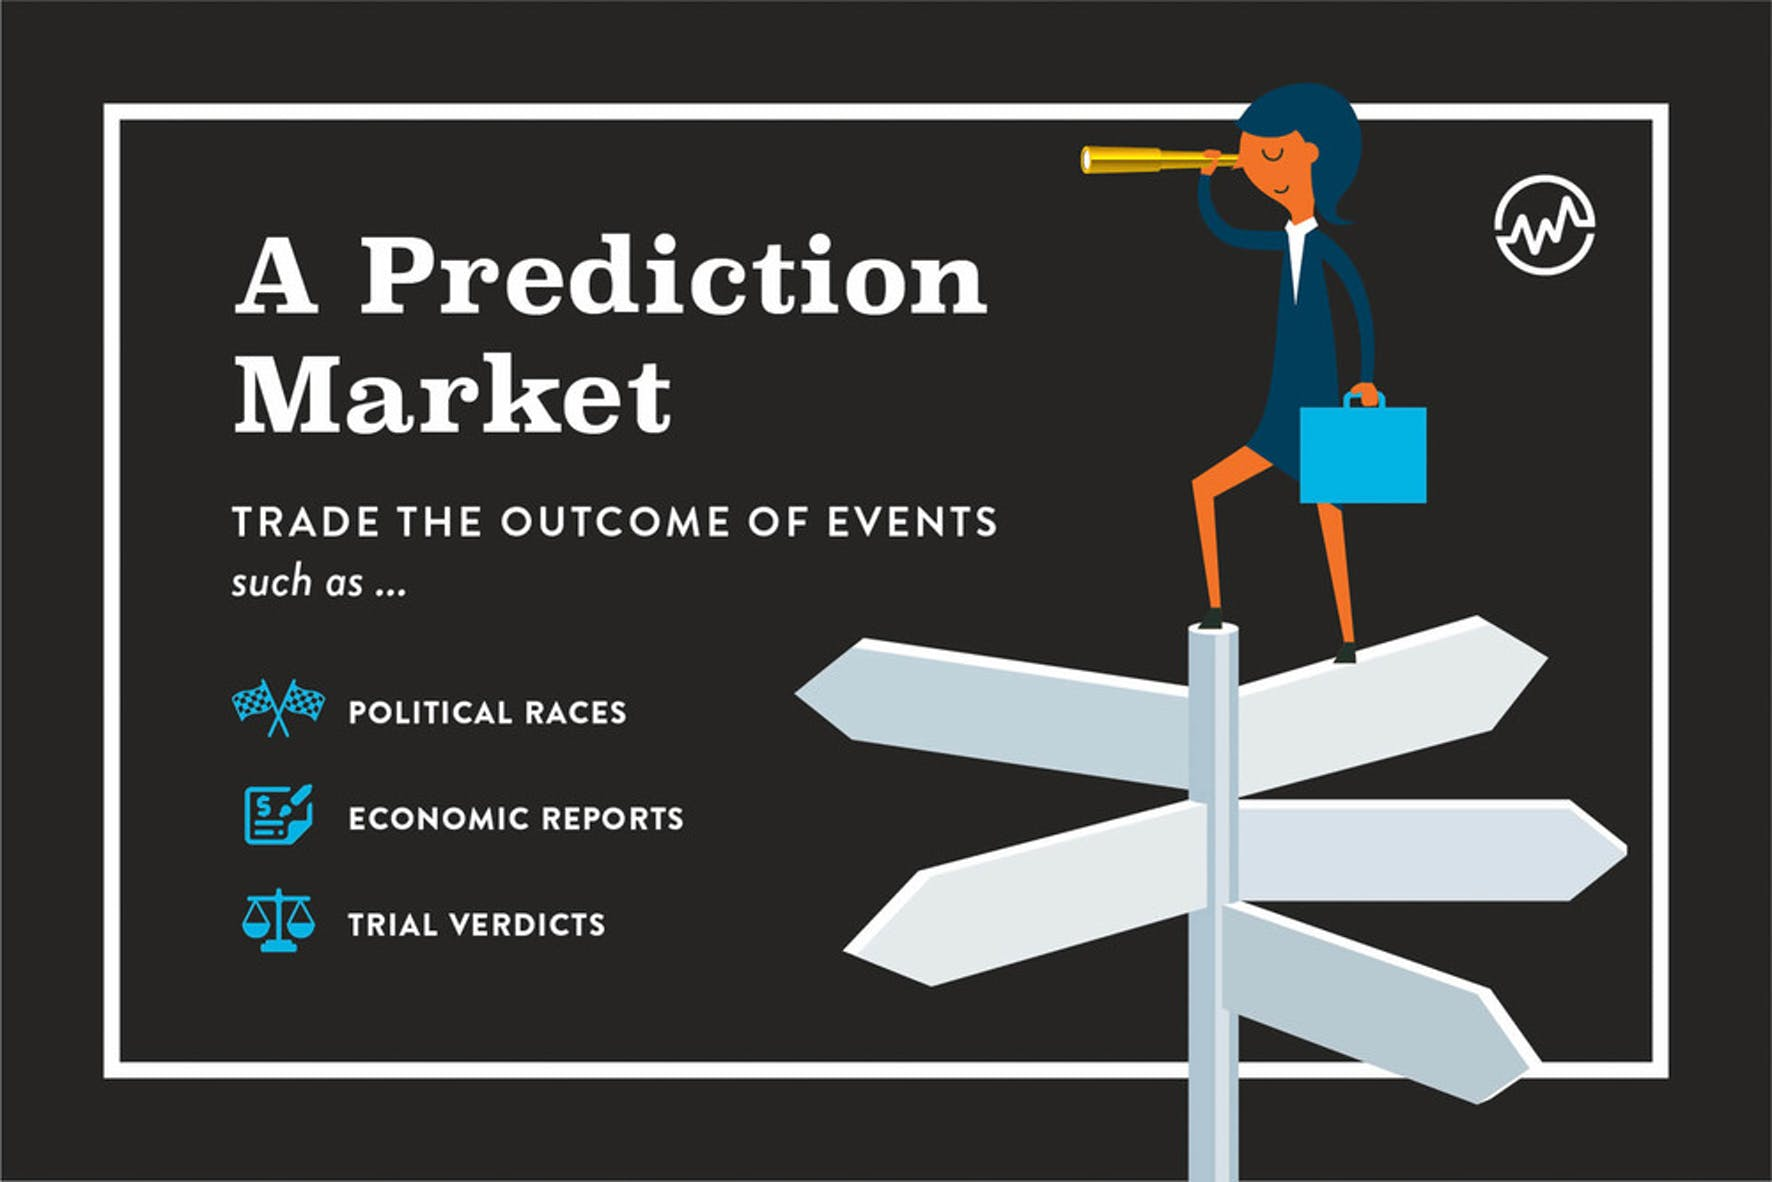 A prediction market allows you to invest in political races, economic reports, and trial verdicts